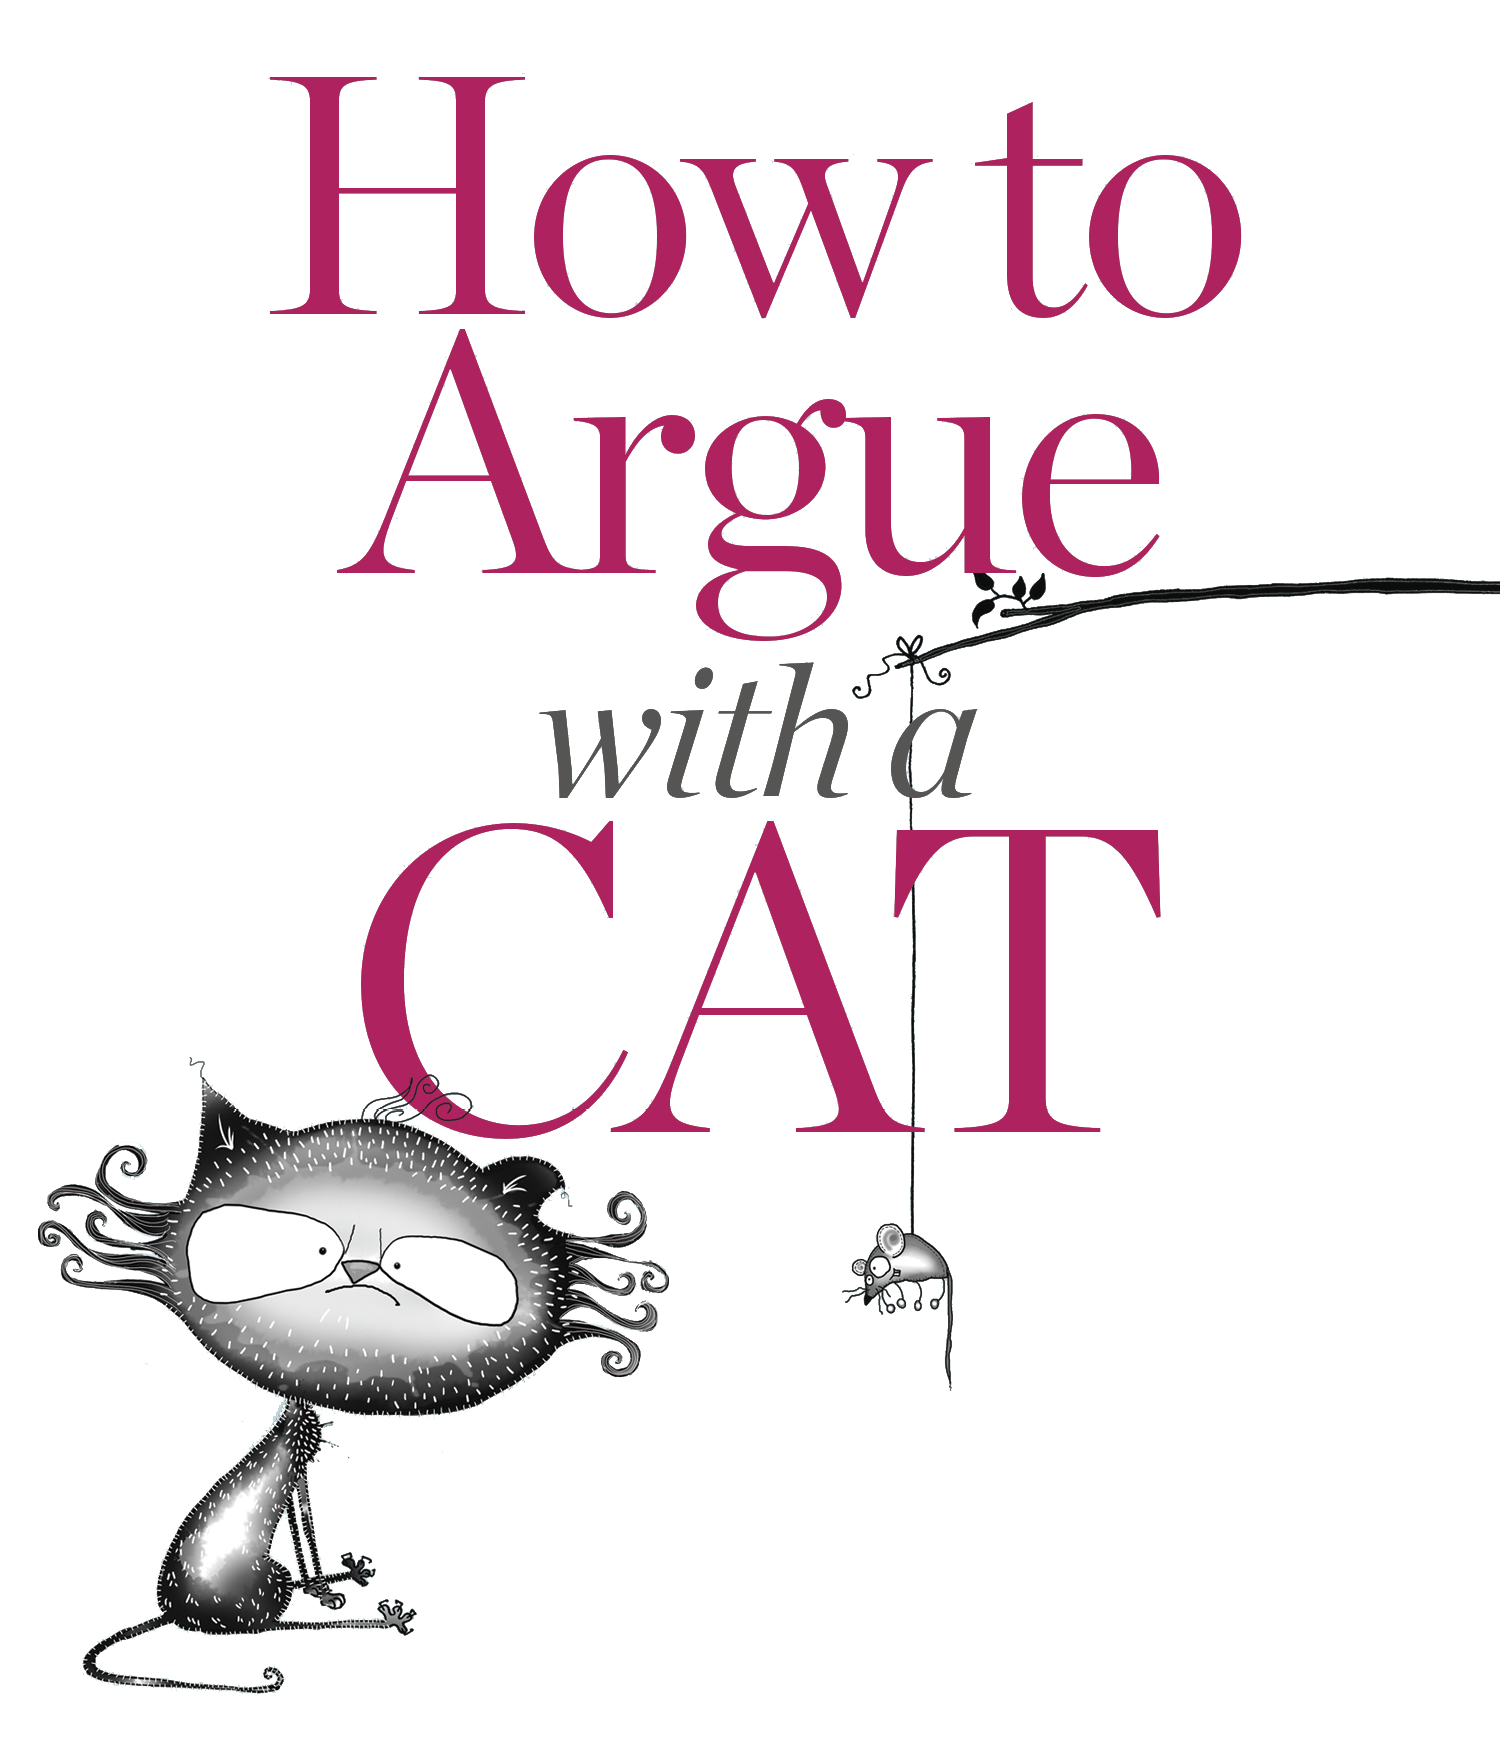 How To Argue With Cat